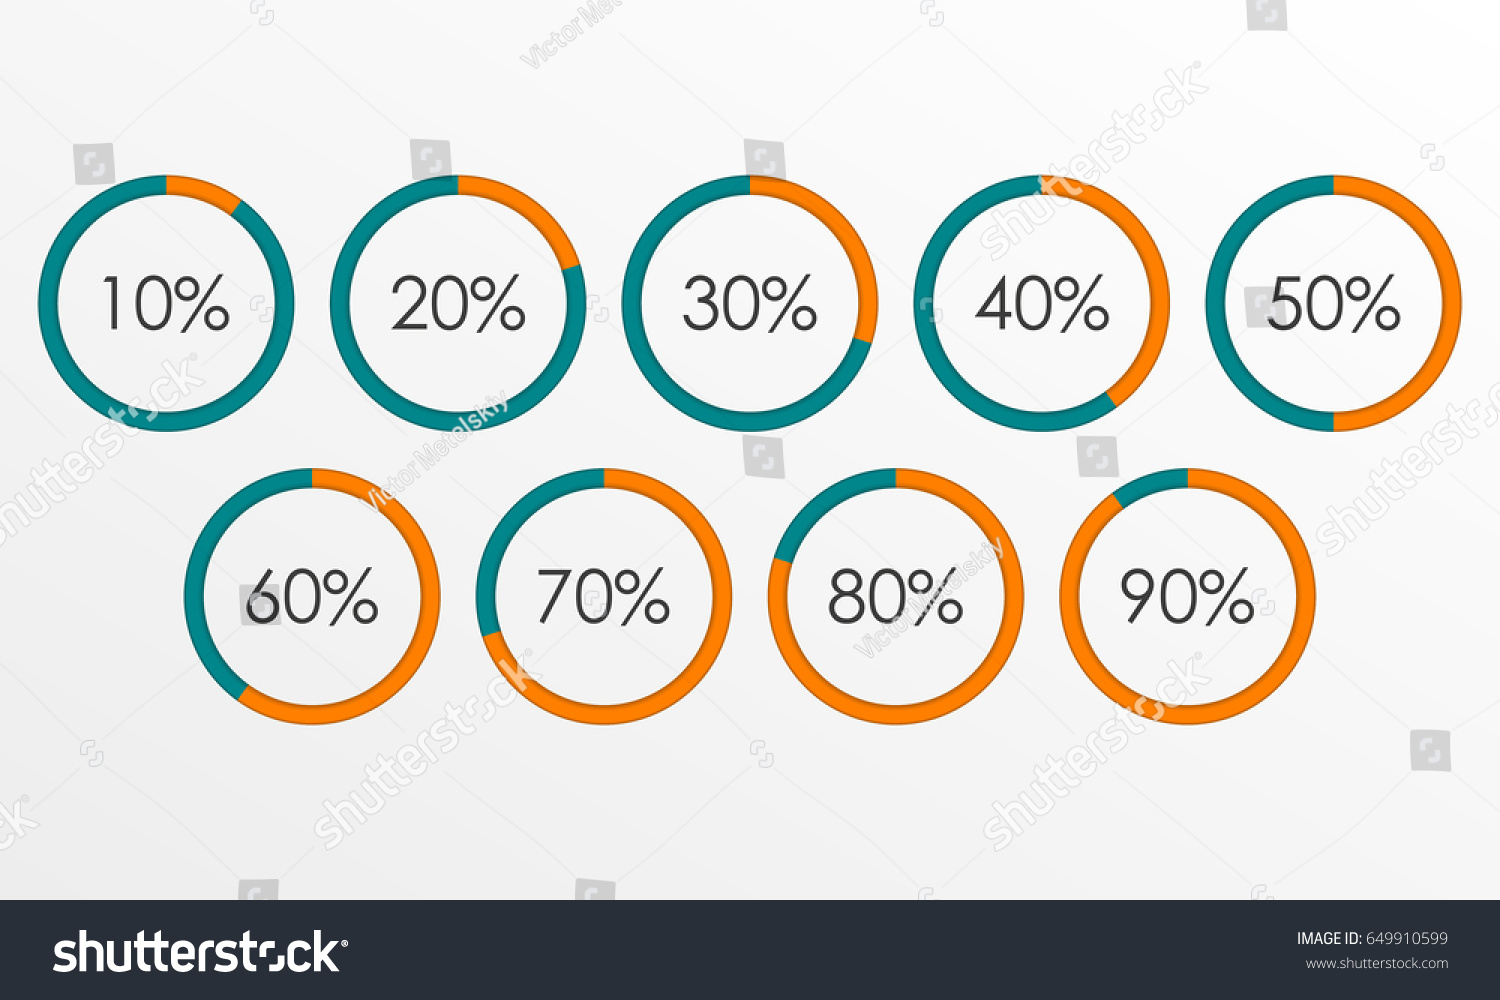 40*50 Circle Diagram Set Percentage Pie Chart Stock Illustration